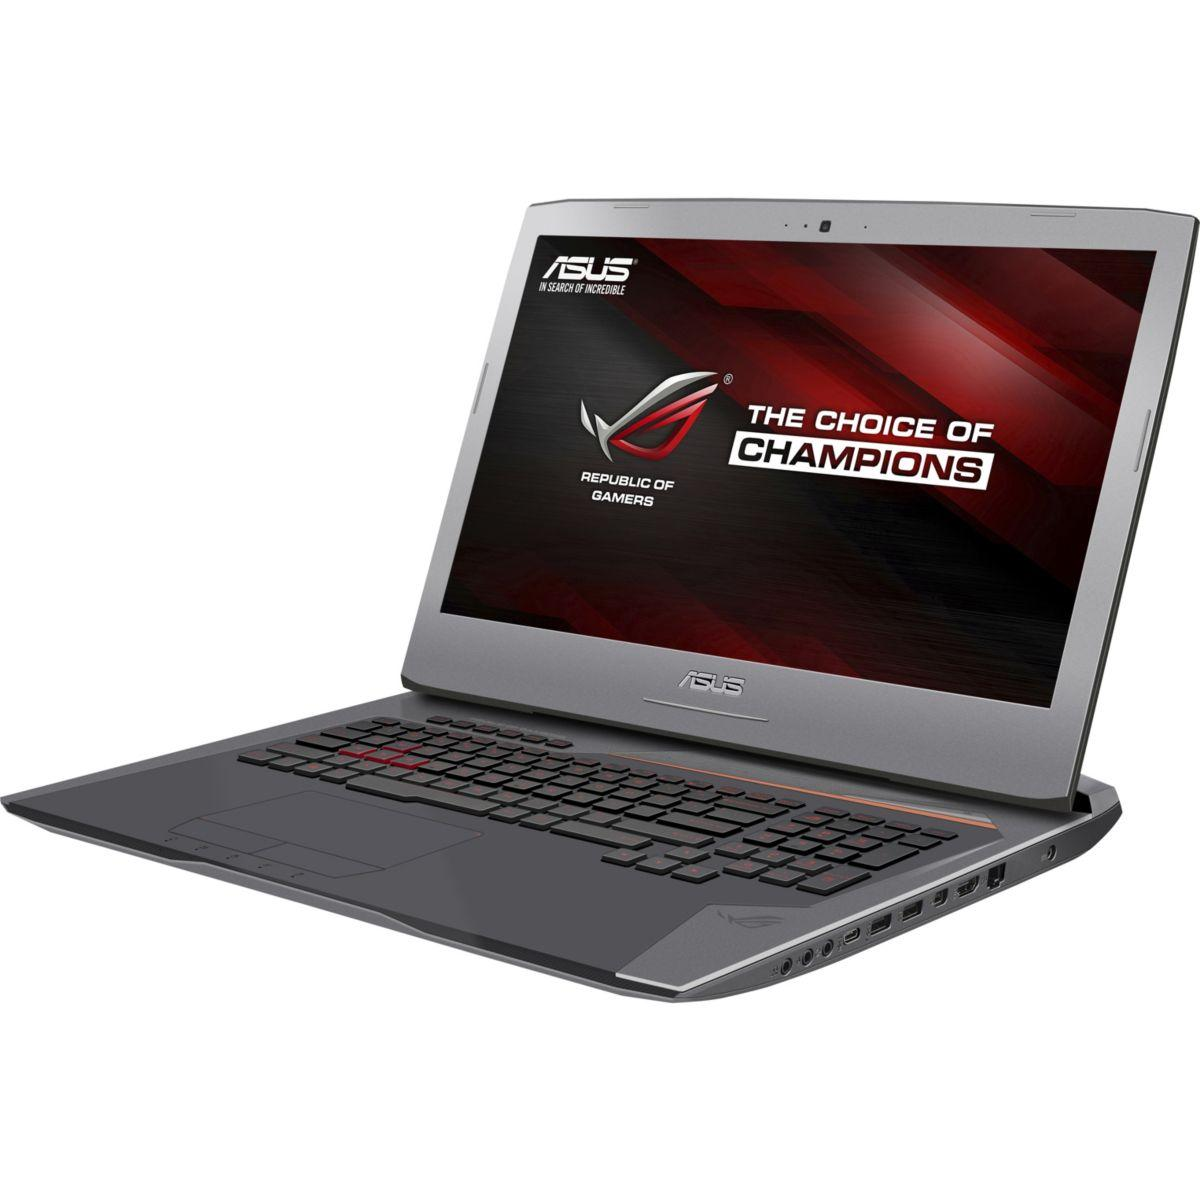 Pc portable gamer asus rog g752vs-ba219t - coup de coeur de l'équipe (photo)